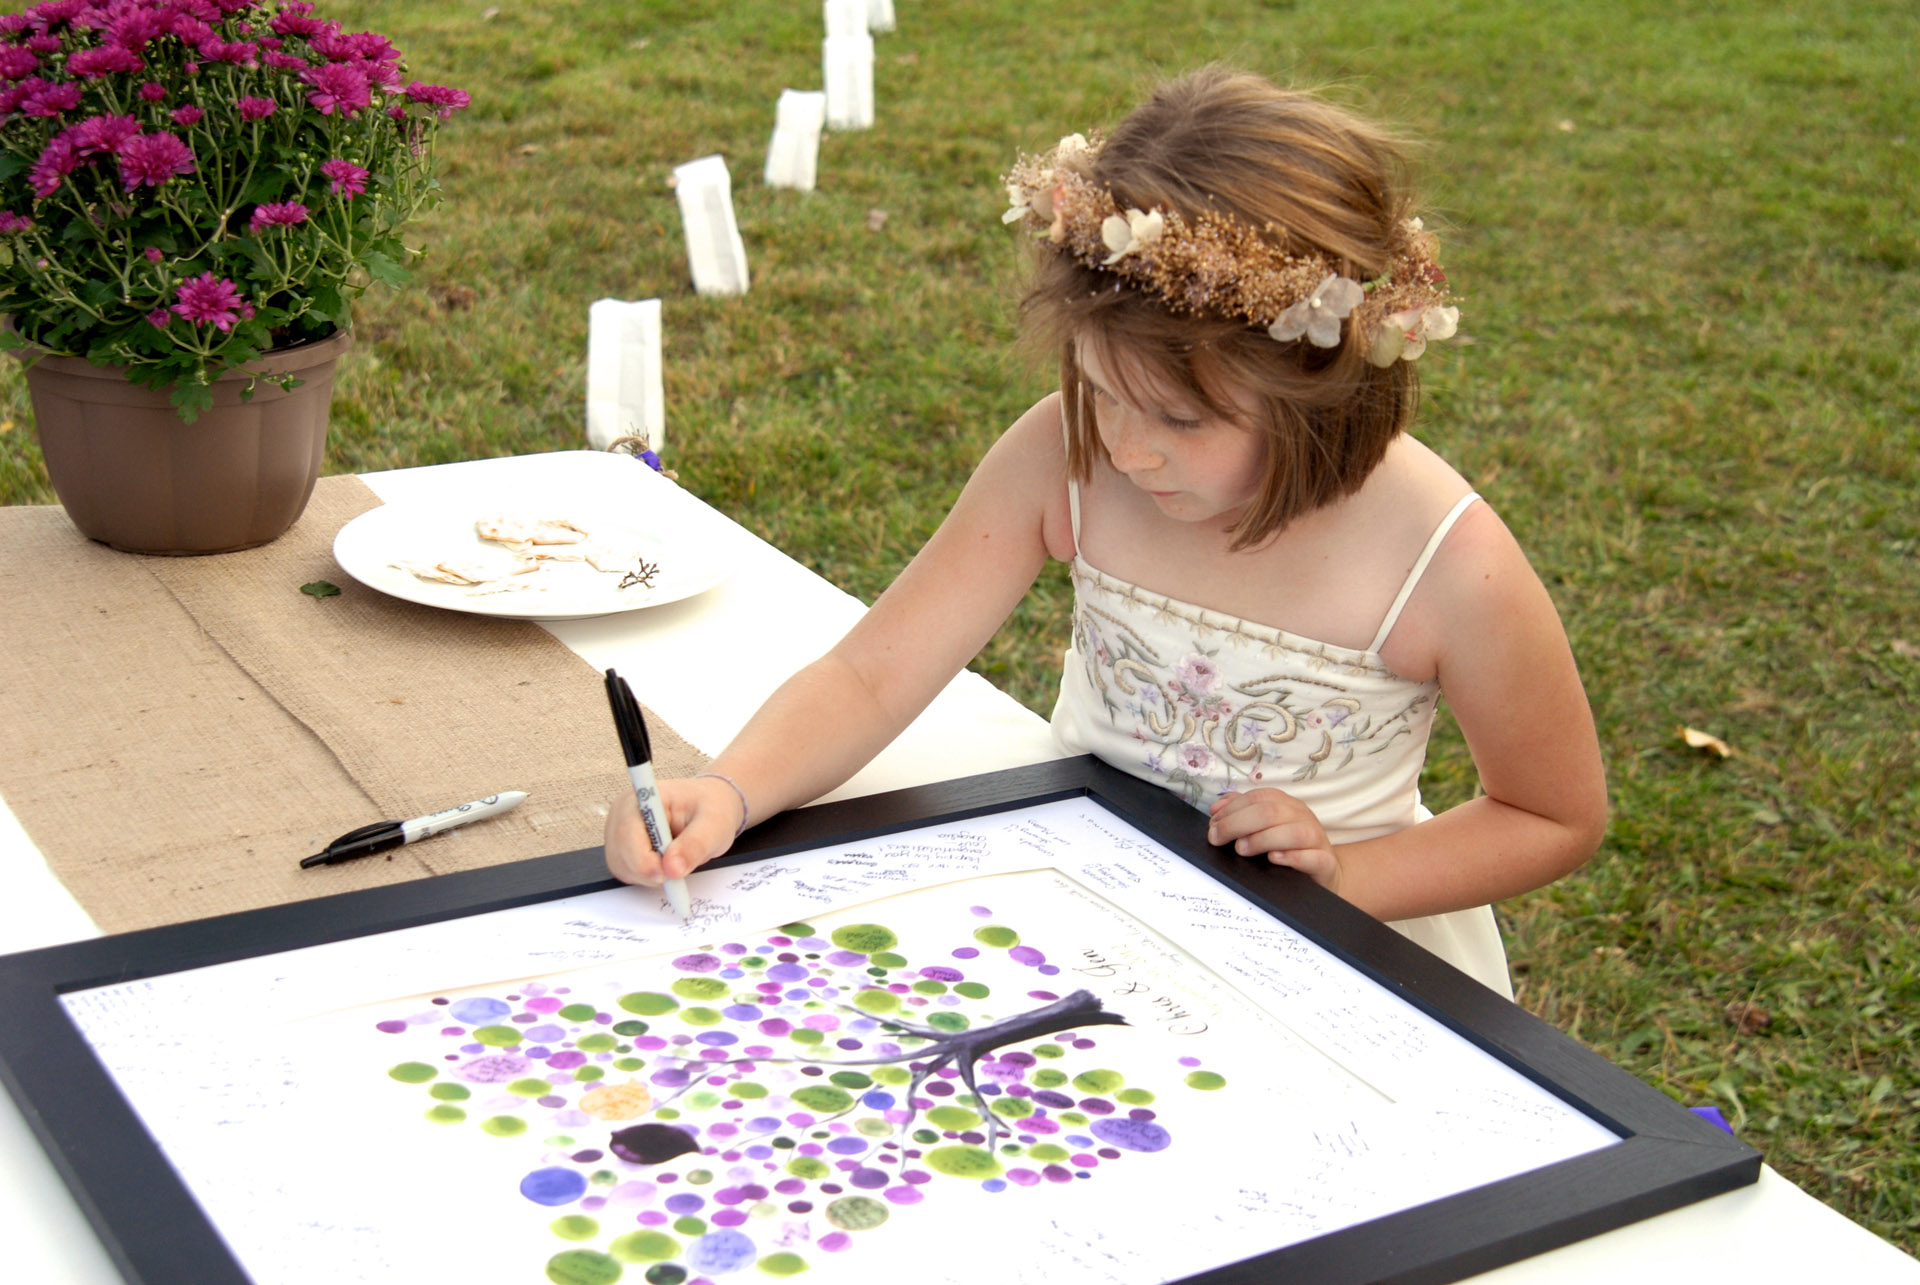 Best Michigan backyard wedding photography features photojournalist photos of the flower girl signing the guest book in metro Detroit, Michigan featuring their lovely backyard garden wedding in fall.